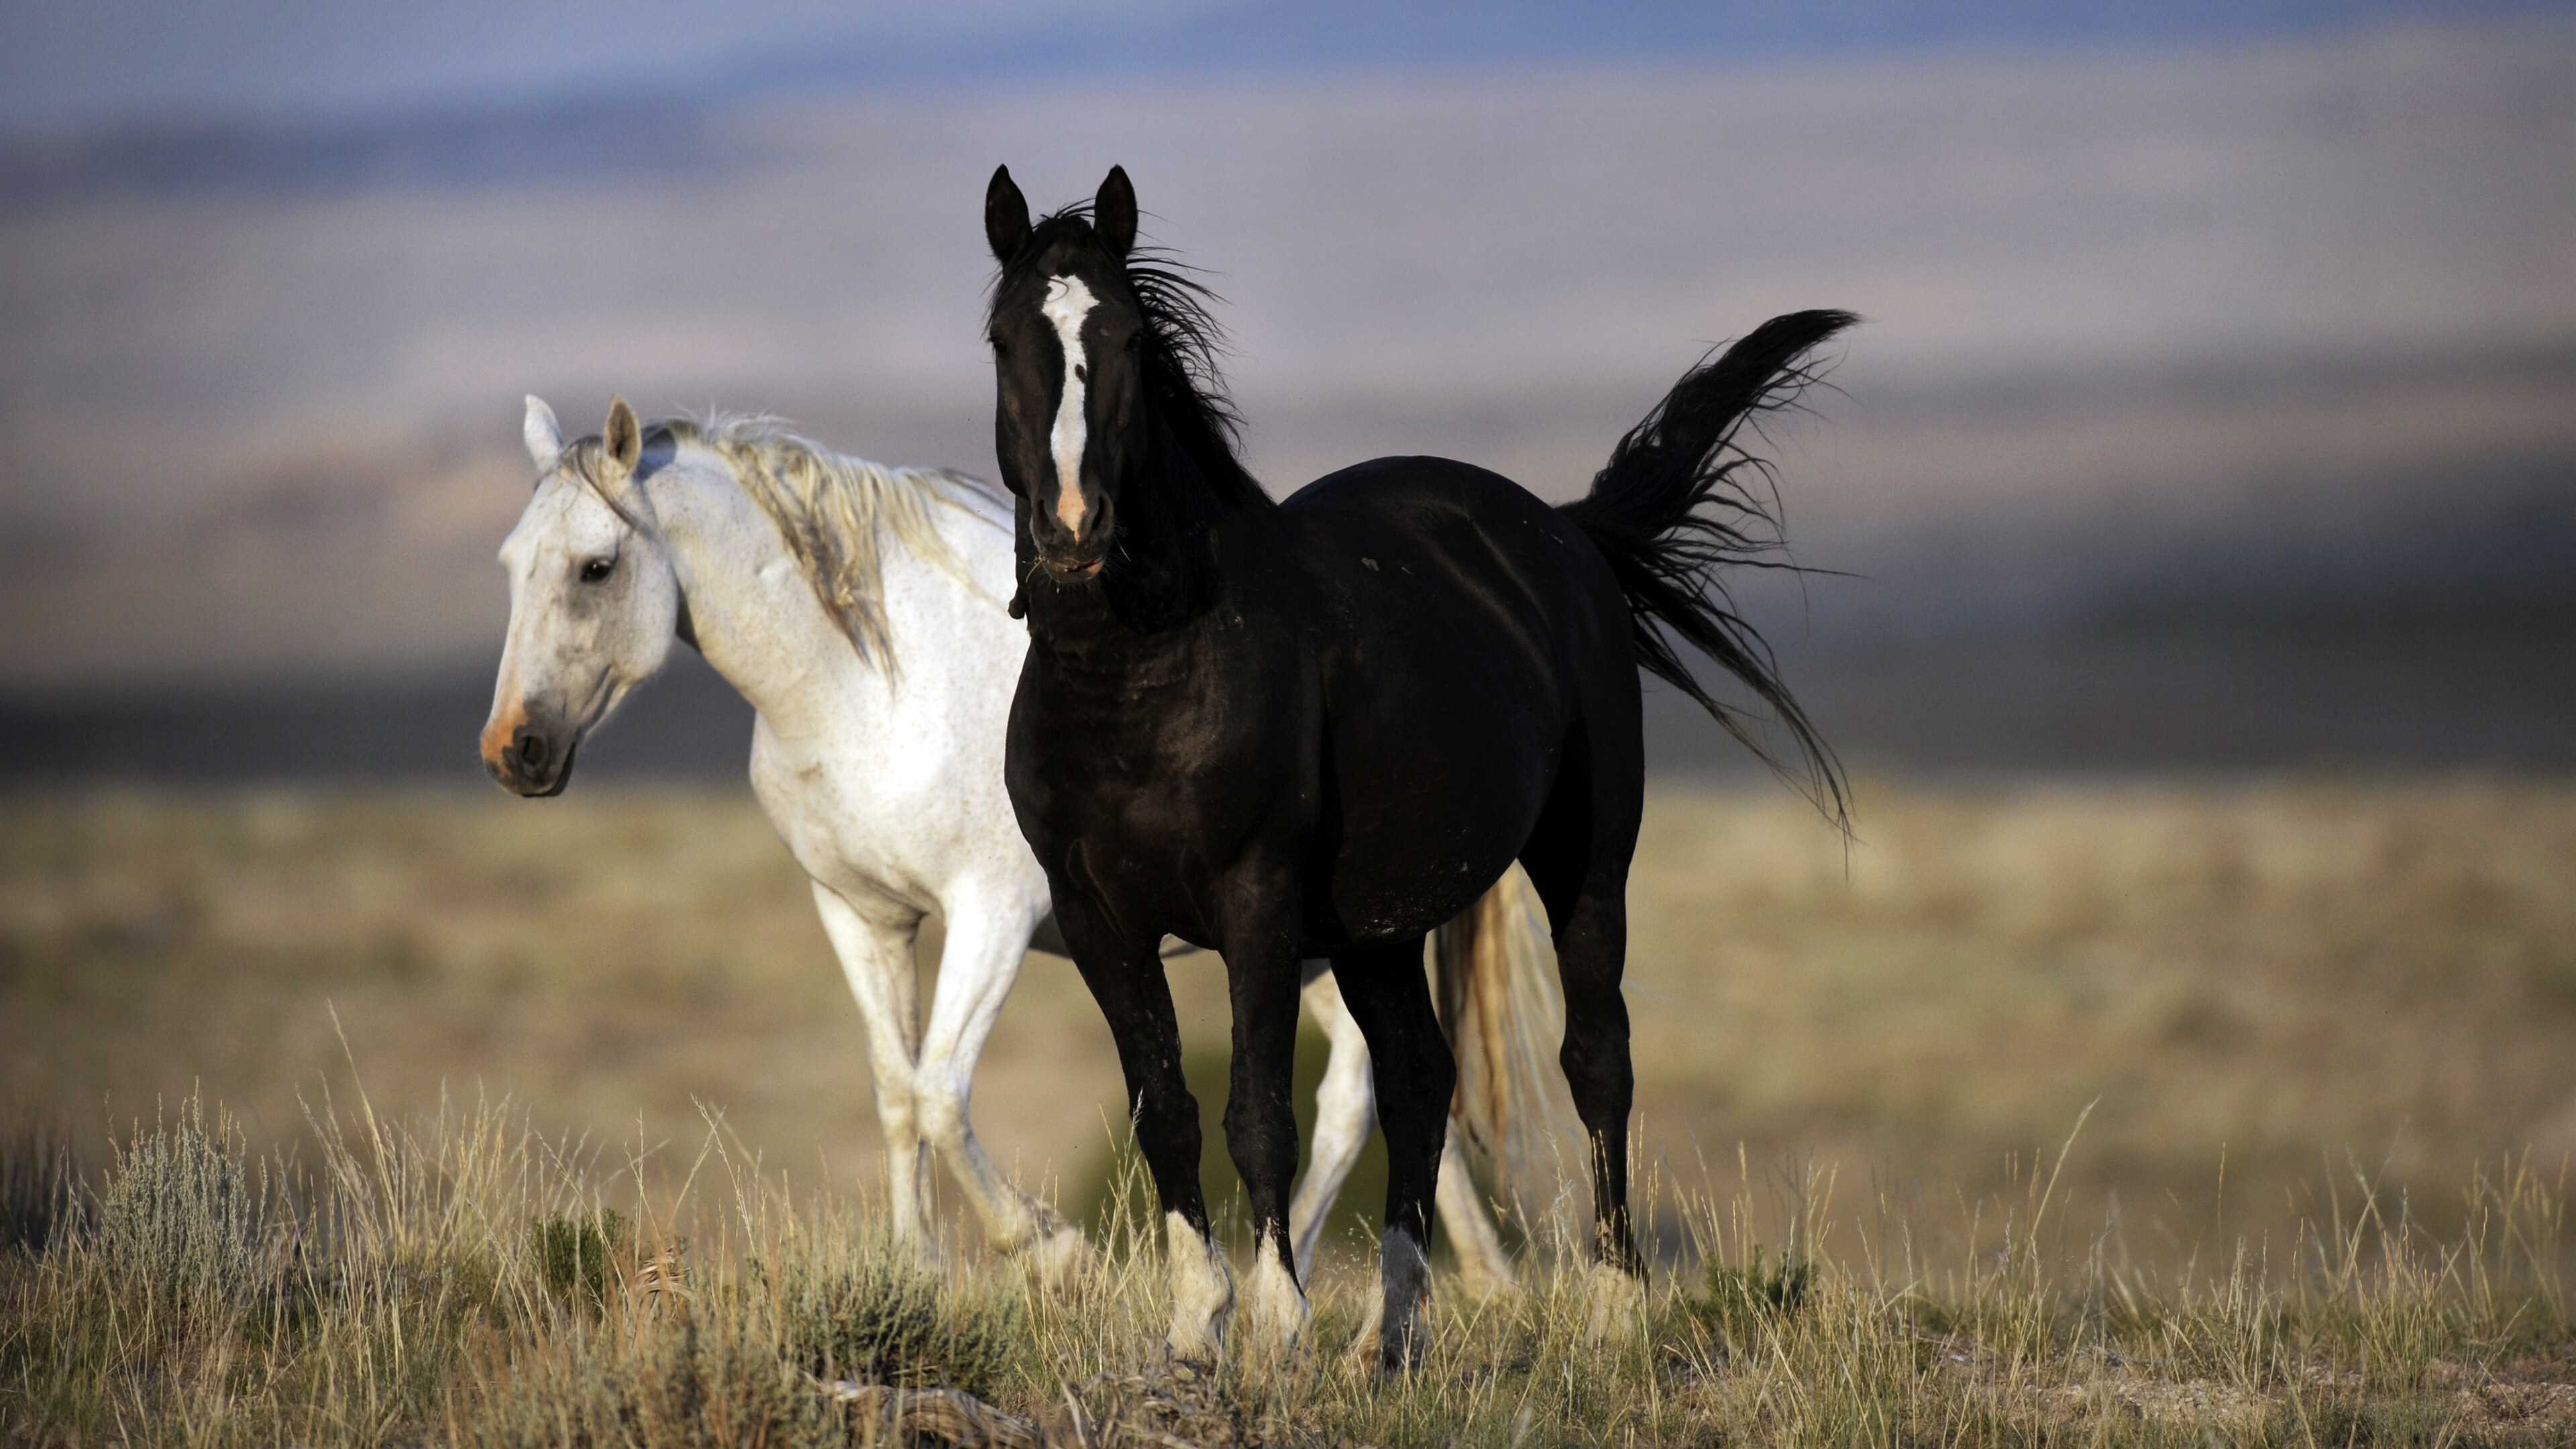 Black And White Horse 4k Photo Hd Wallpapers